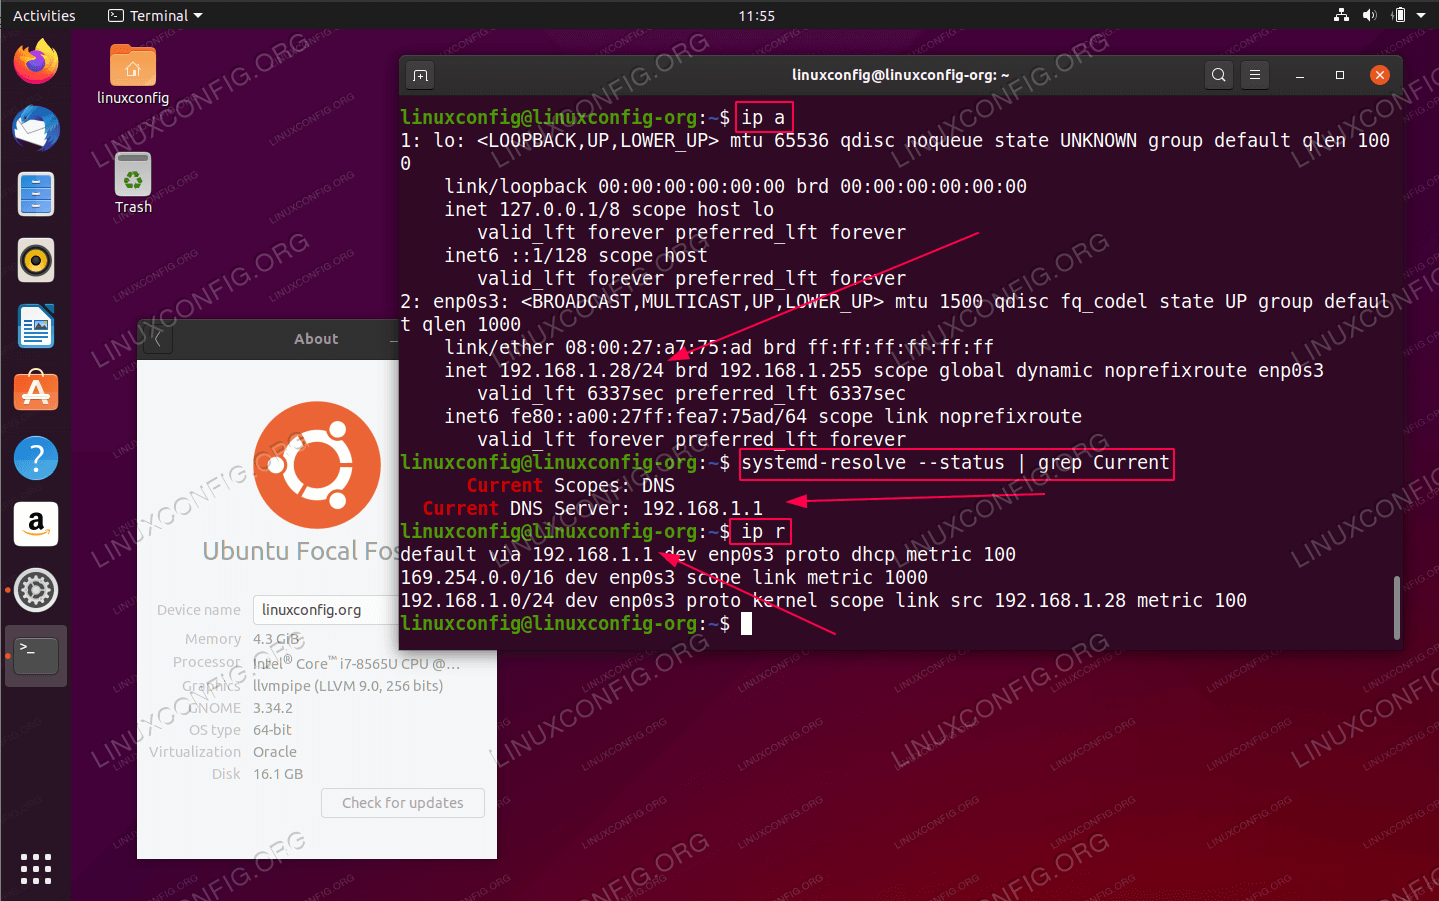 How to find my IP address, default gateway and DNS server on Ubuntu 20.04 Focal Fossa Linux from command line